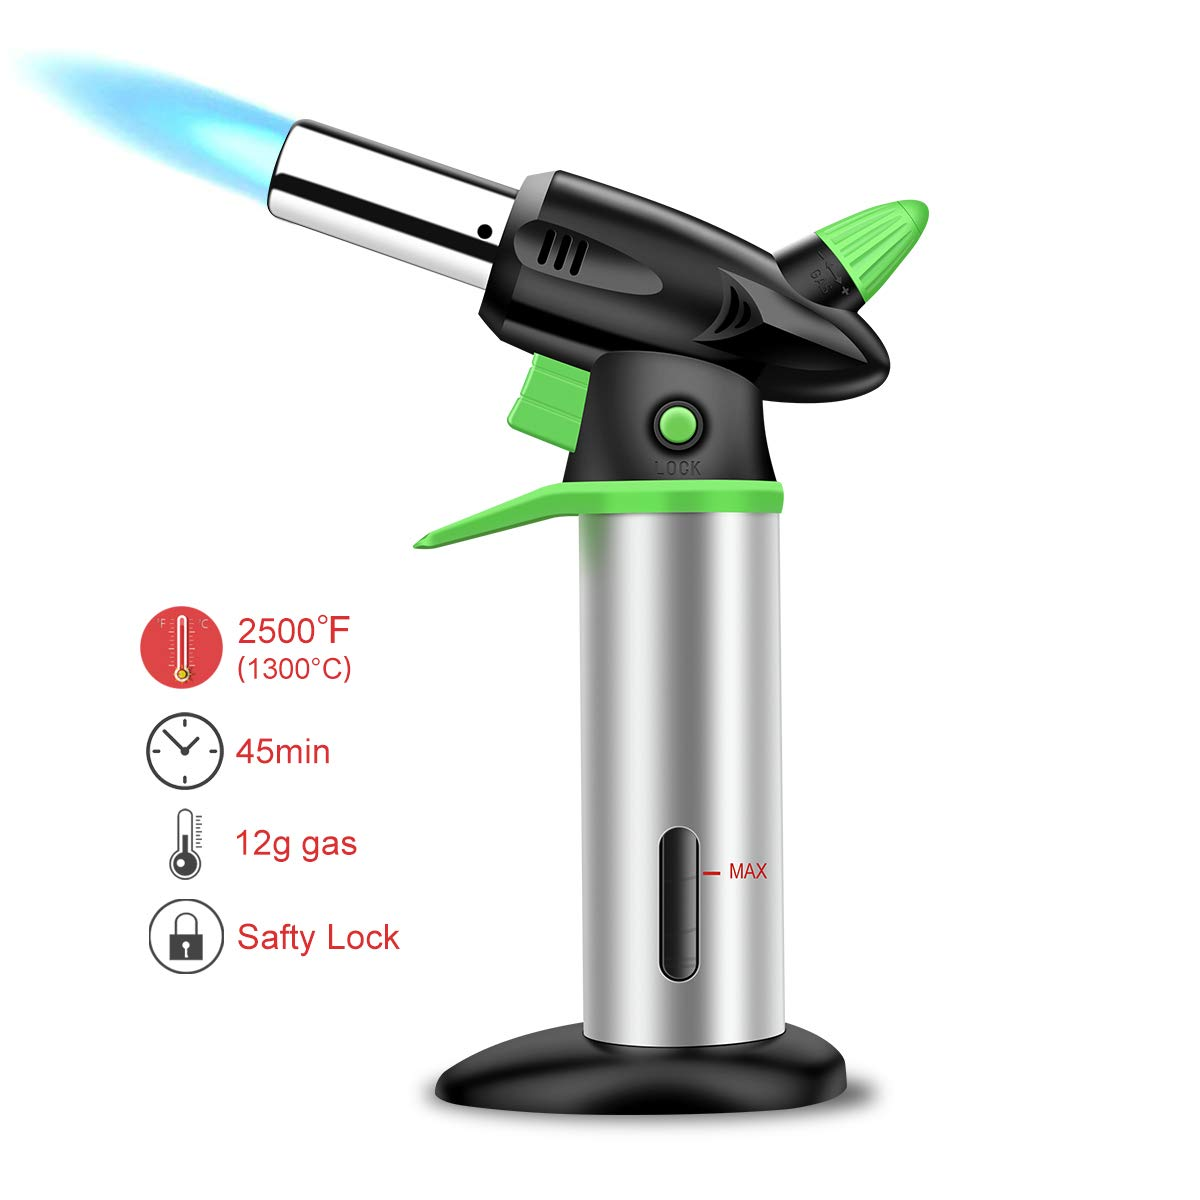 Himover Butane Torch, Culinary Chef Cooking Kitchen Blow Torch Refillable Flame Lighter with Safety Lock for Baking, DIY, Creme Brulee, BBQ and Soldering (Butane Fuel Not Included)